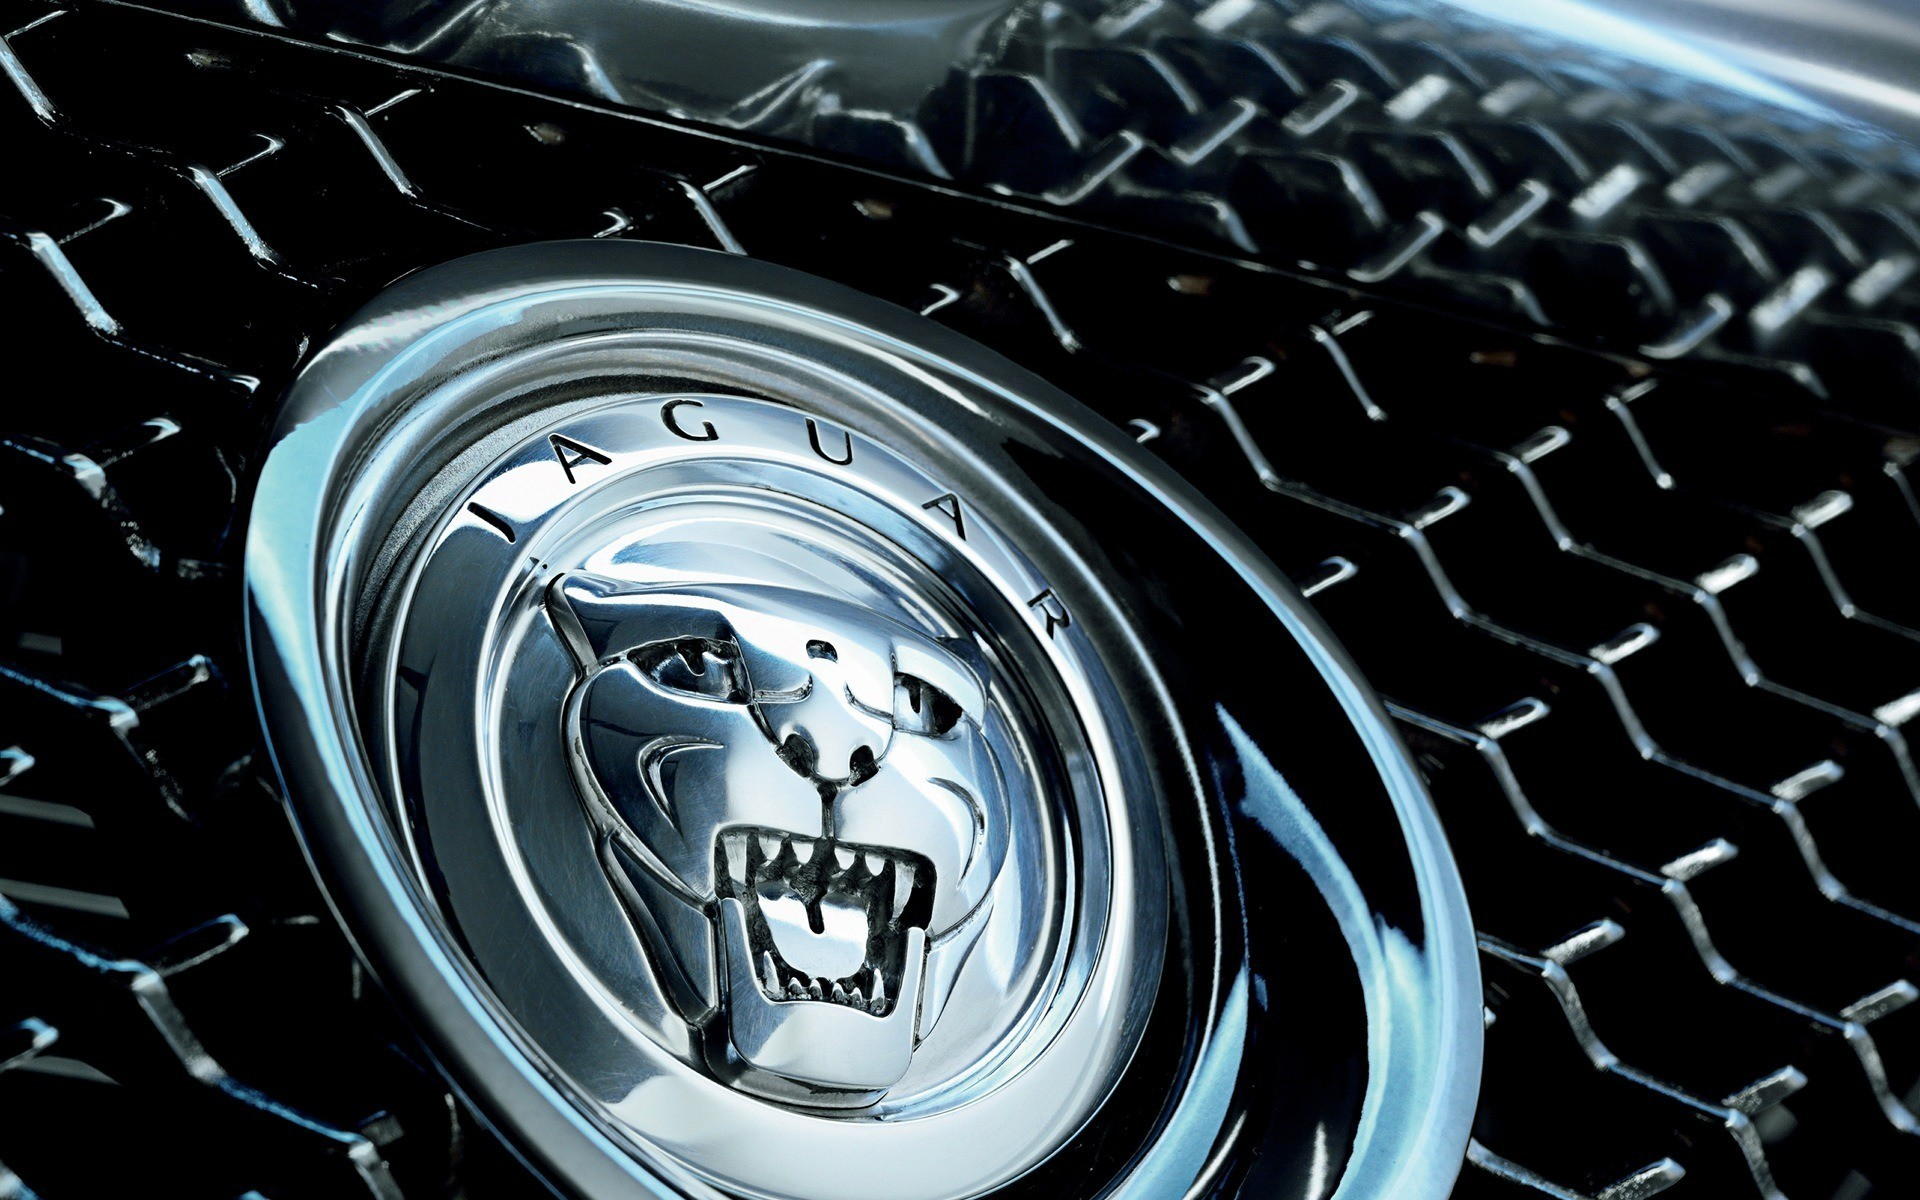 1920x1200 jaguar car logo wallpaper 58999